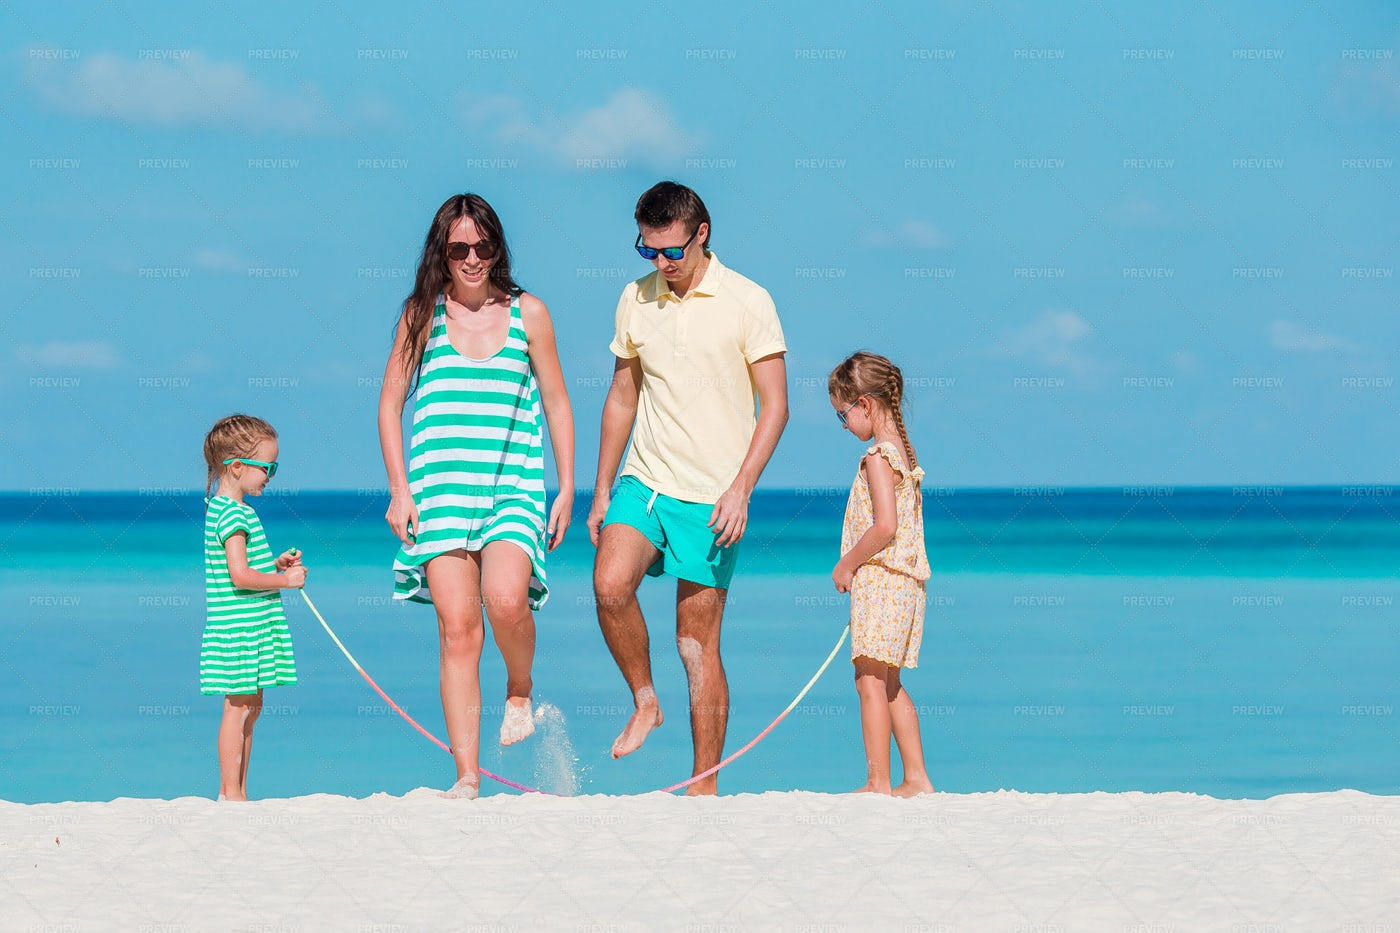 Jumping Rope On The Beach: Stock Photos